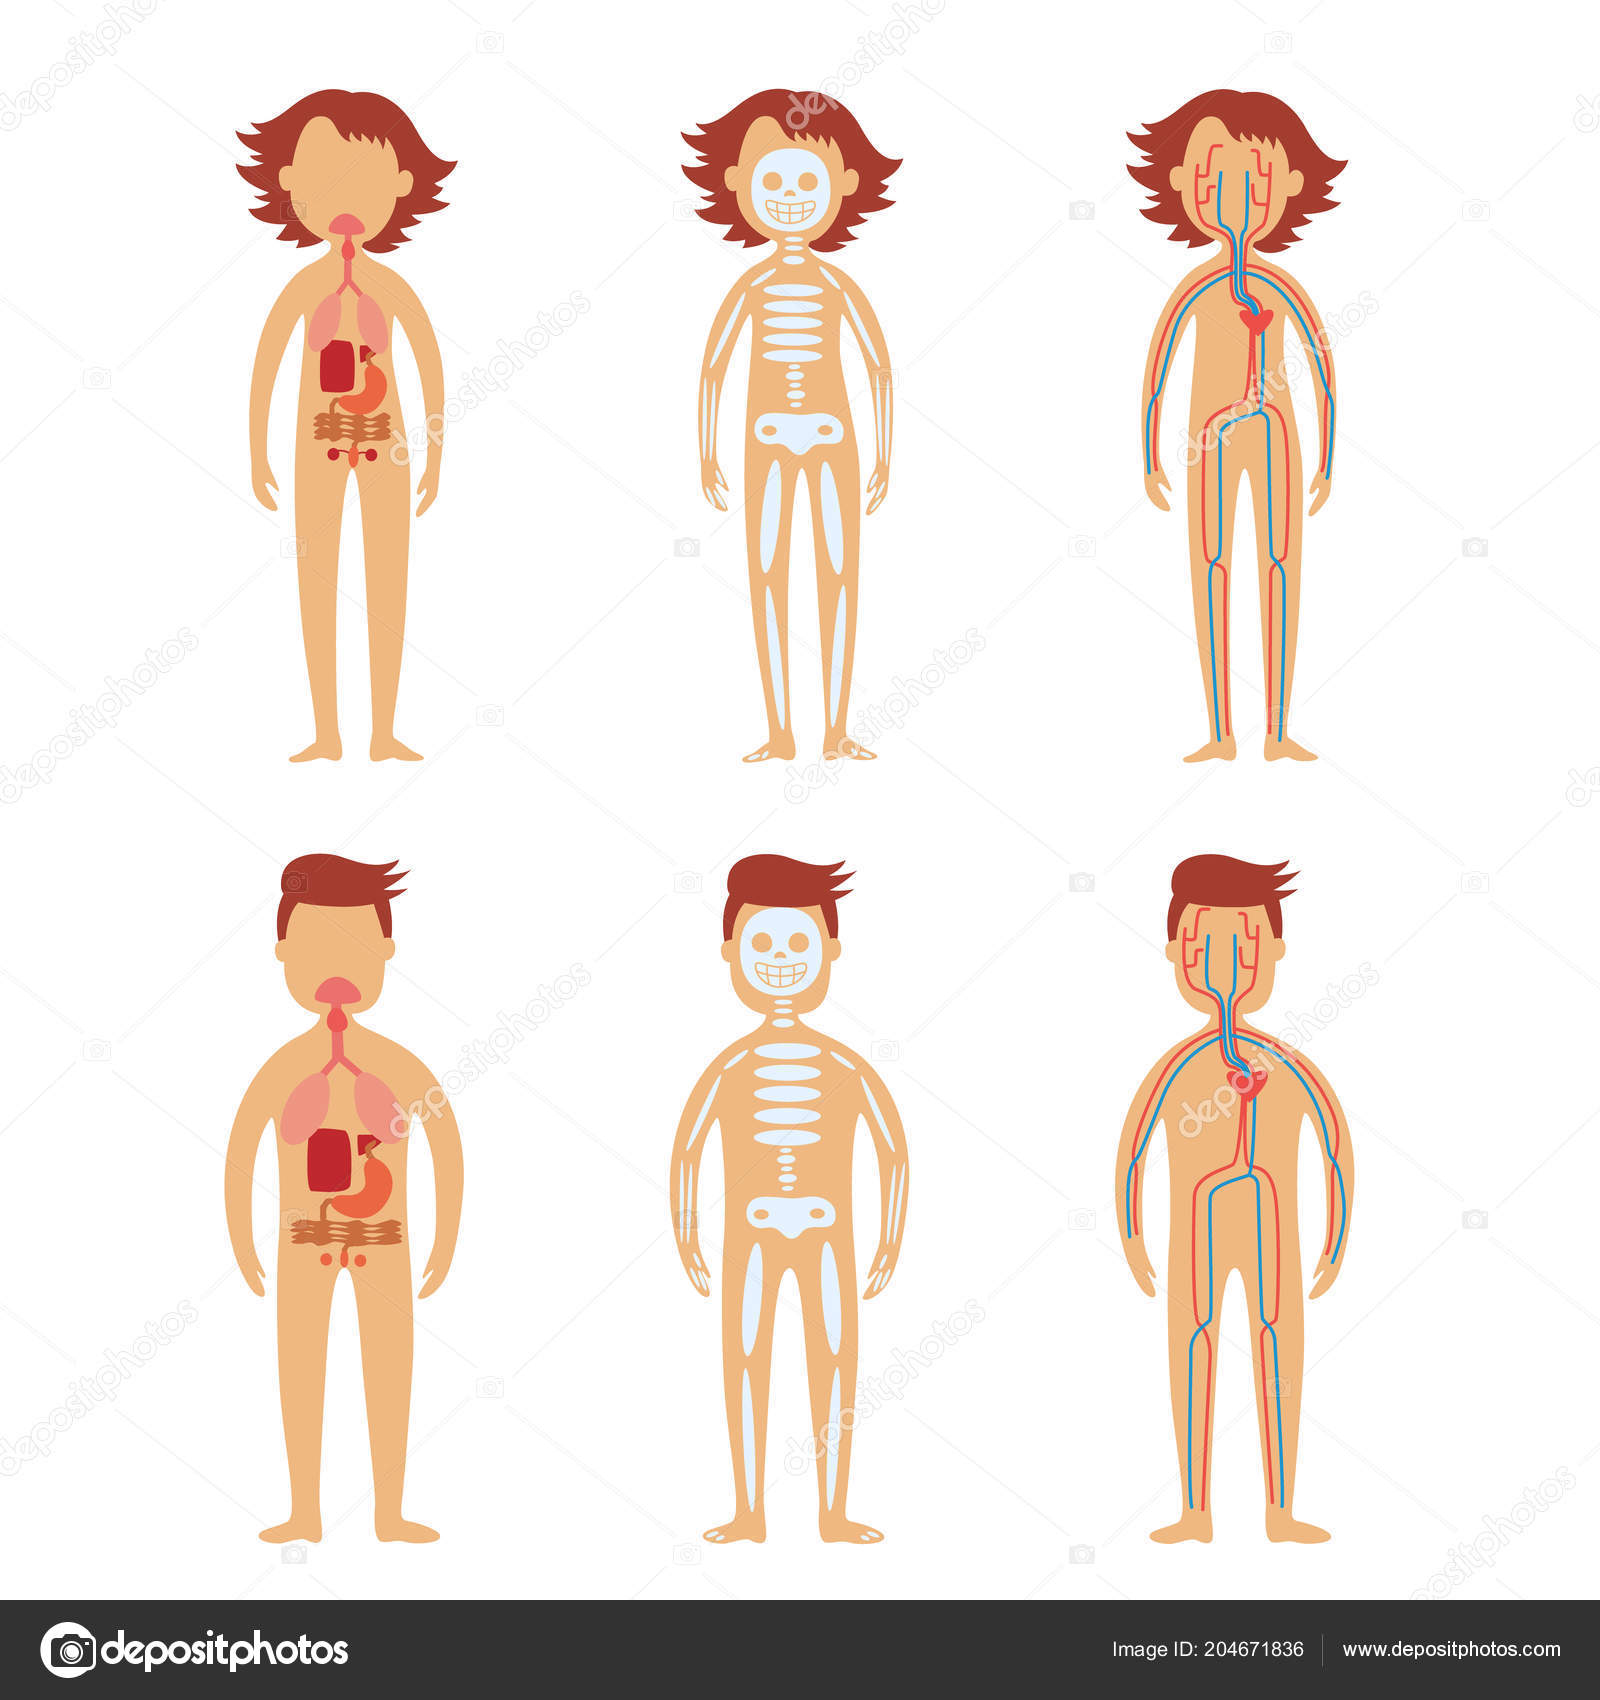 Human Internal Organs In Male And Female Bodies Set Stock Vector